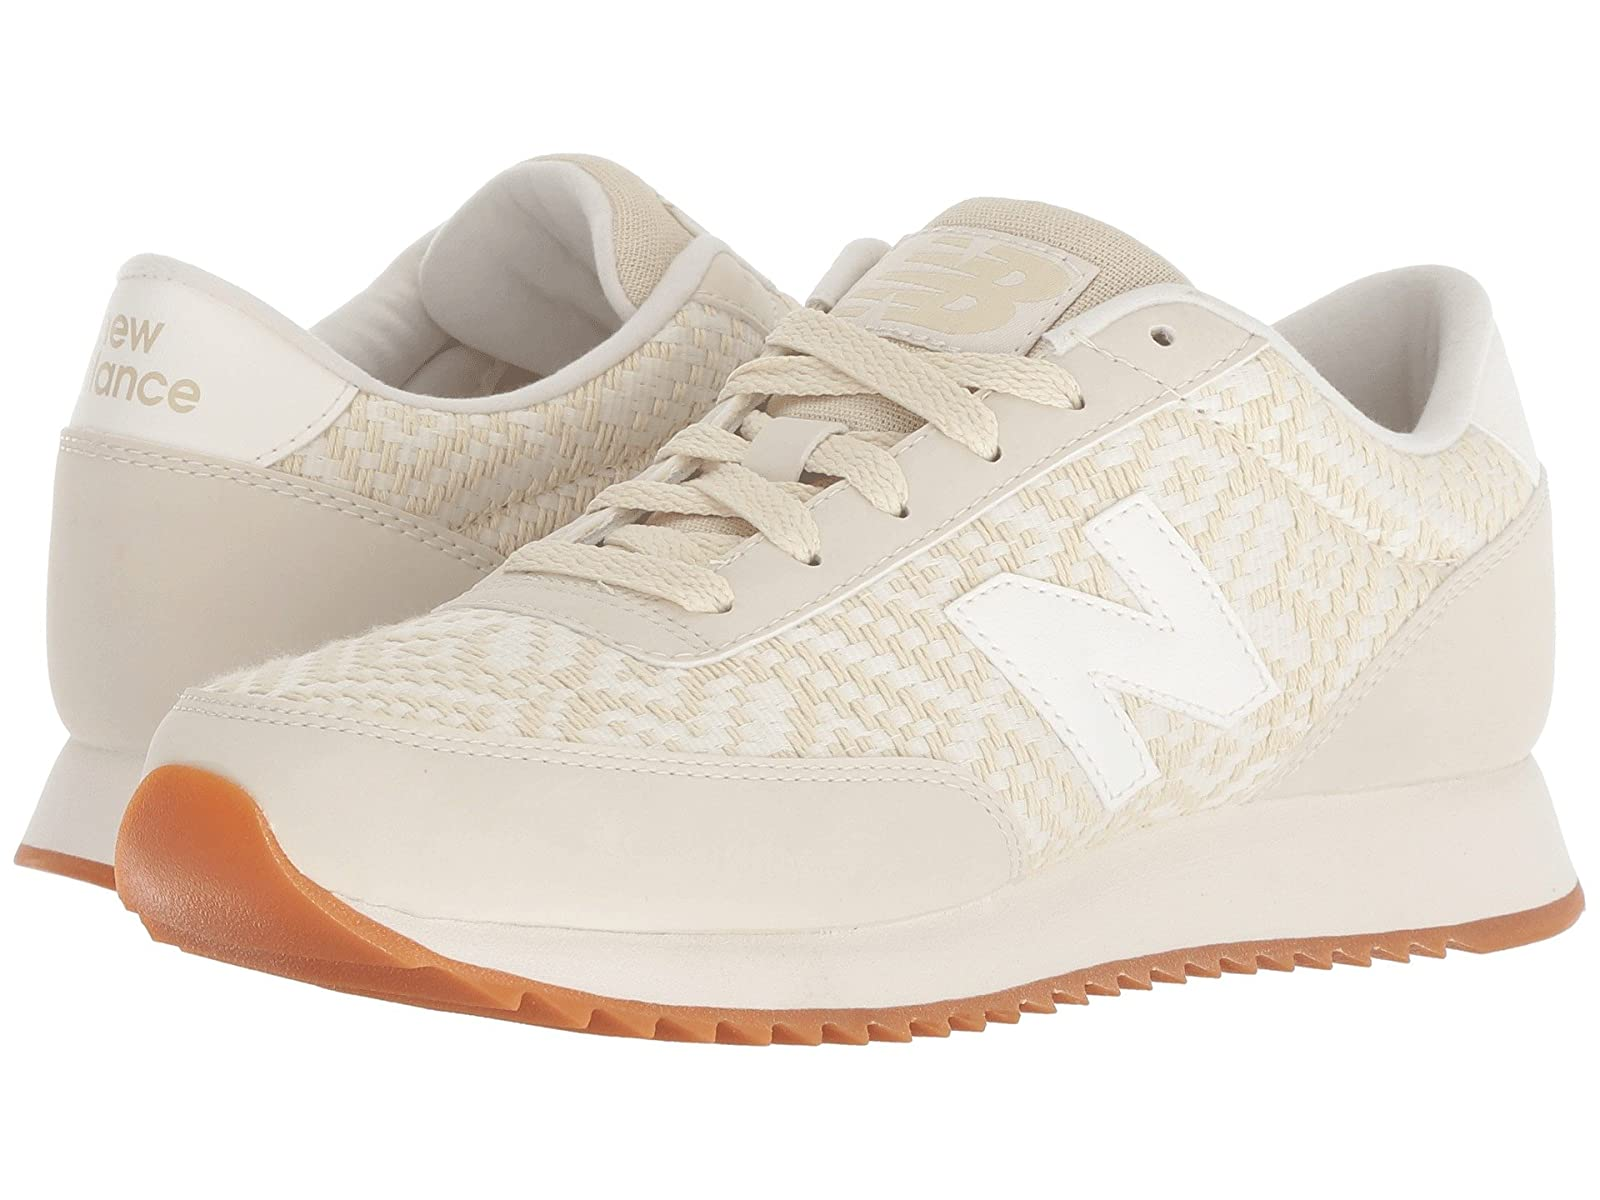 New Balance Classics WZ501v1Atmospheric grades have affordable shoes